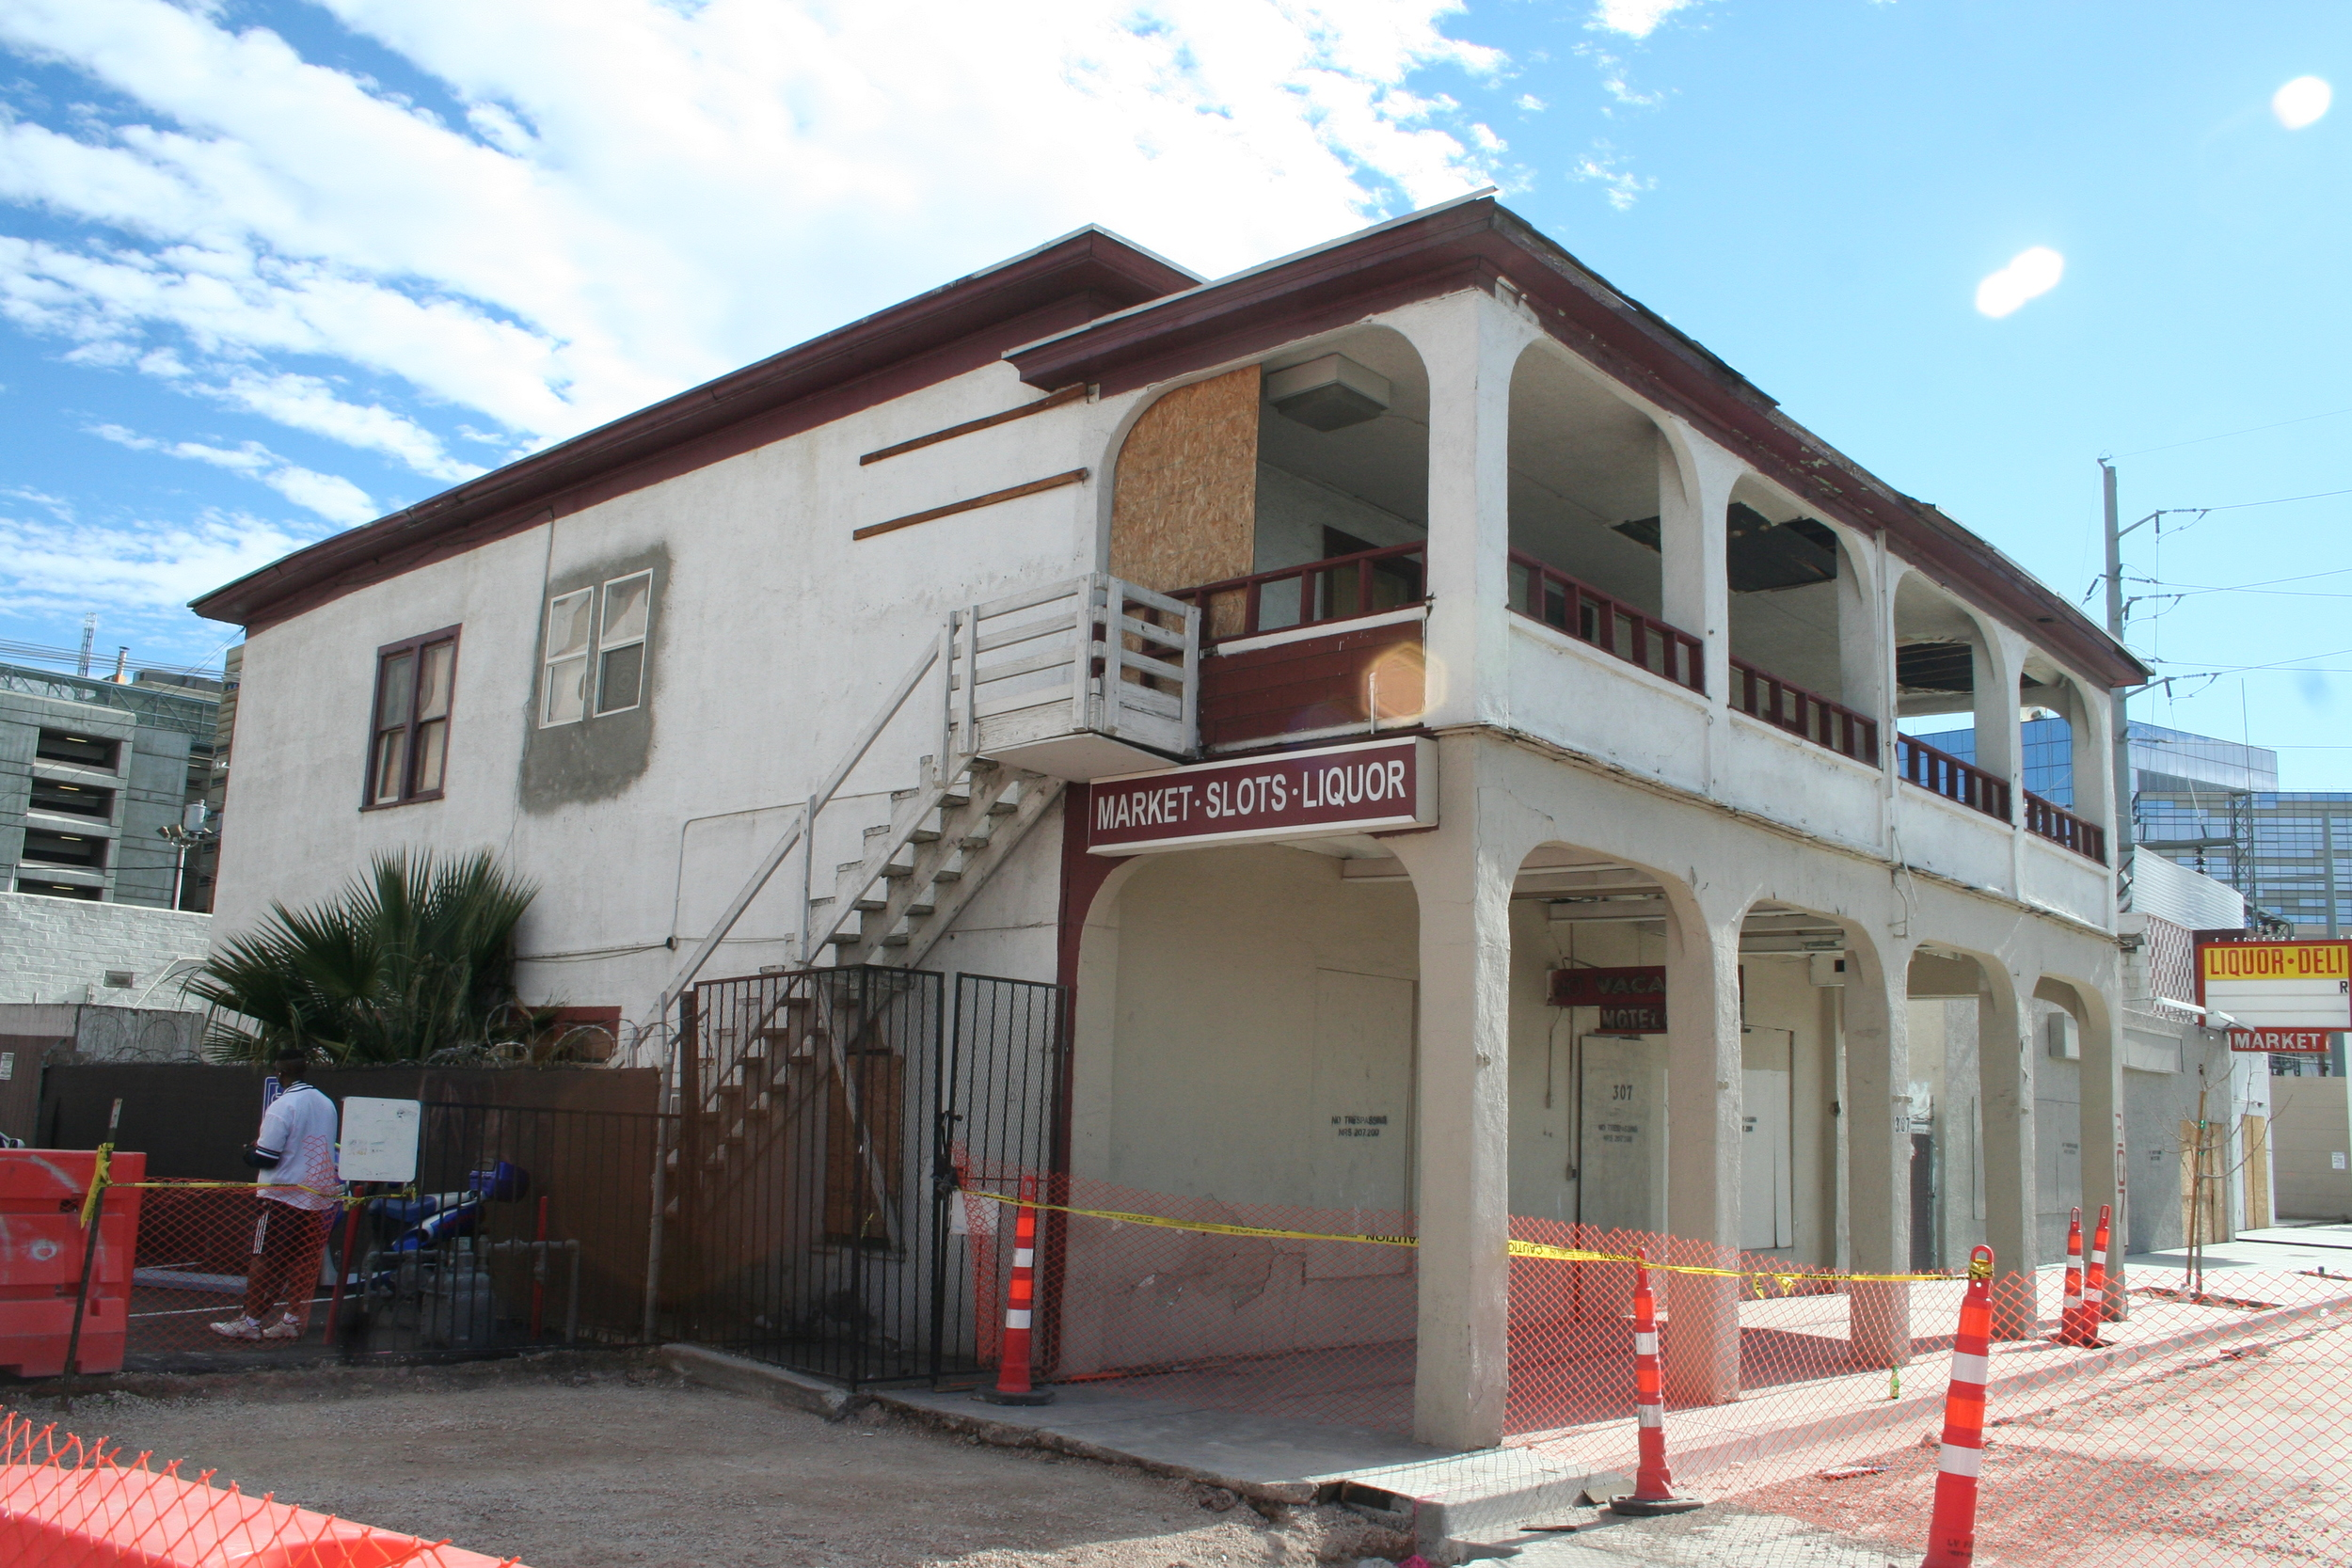 The Victory Hotel as it currently stands. Our intentions are to refurbish the historic facade.